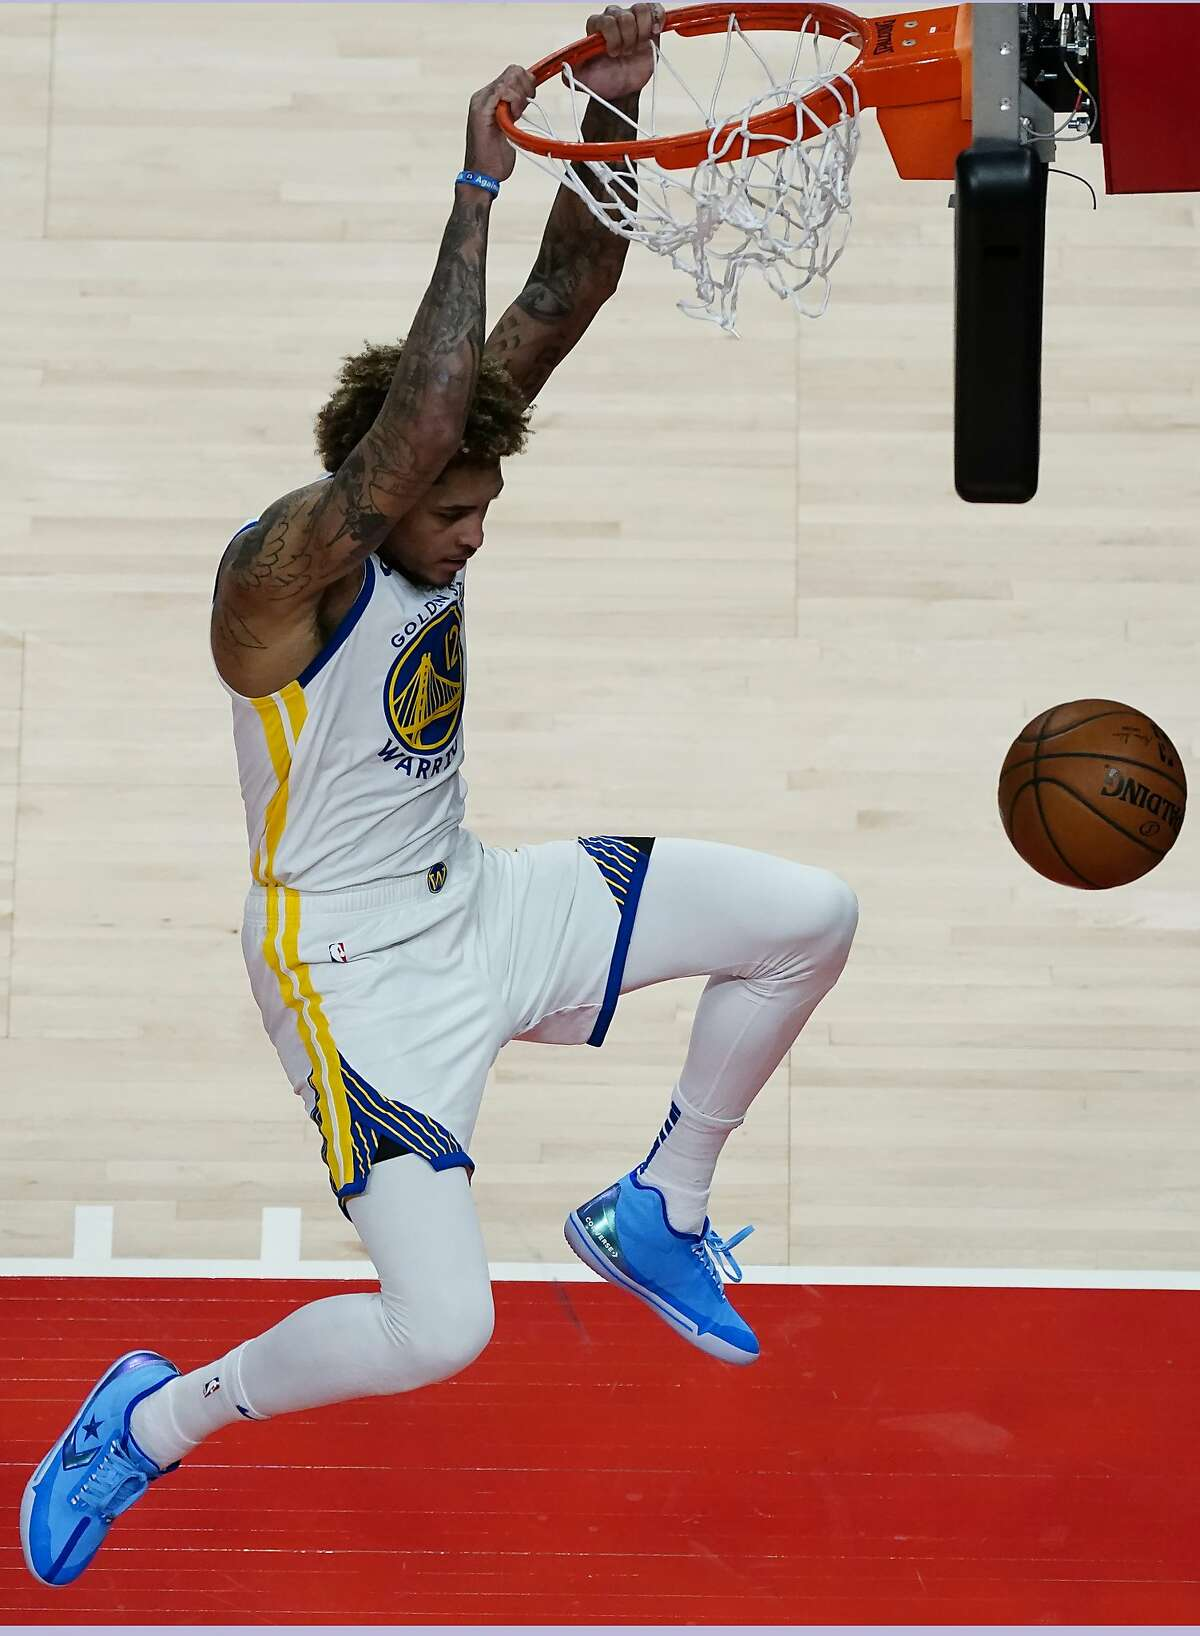 Warriors guard Kelly Oubre Jr. finishes a high-percentage shot against the Atlanta Hawks.